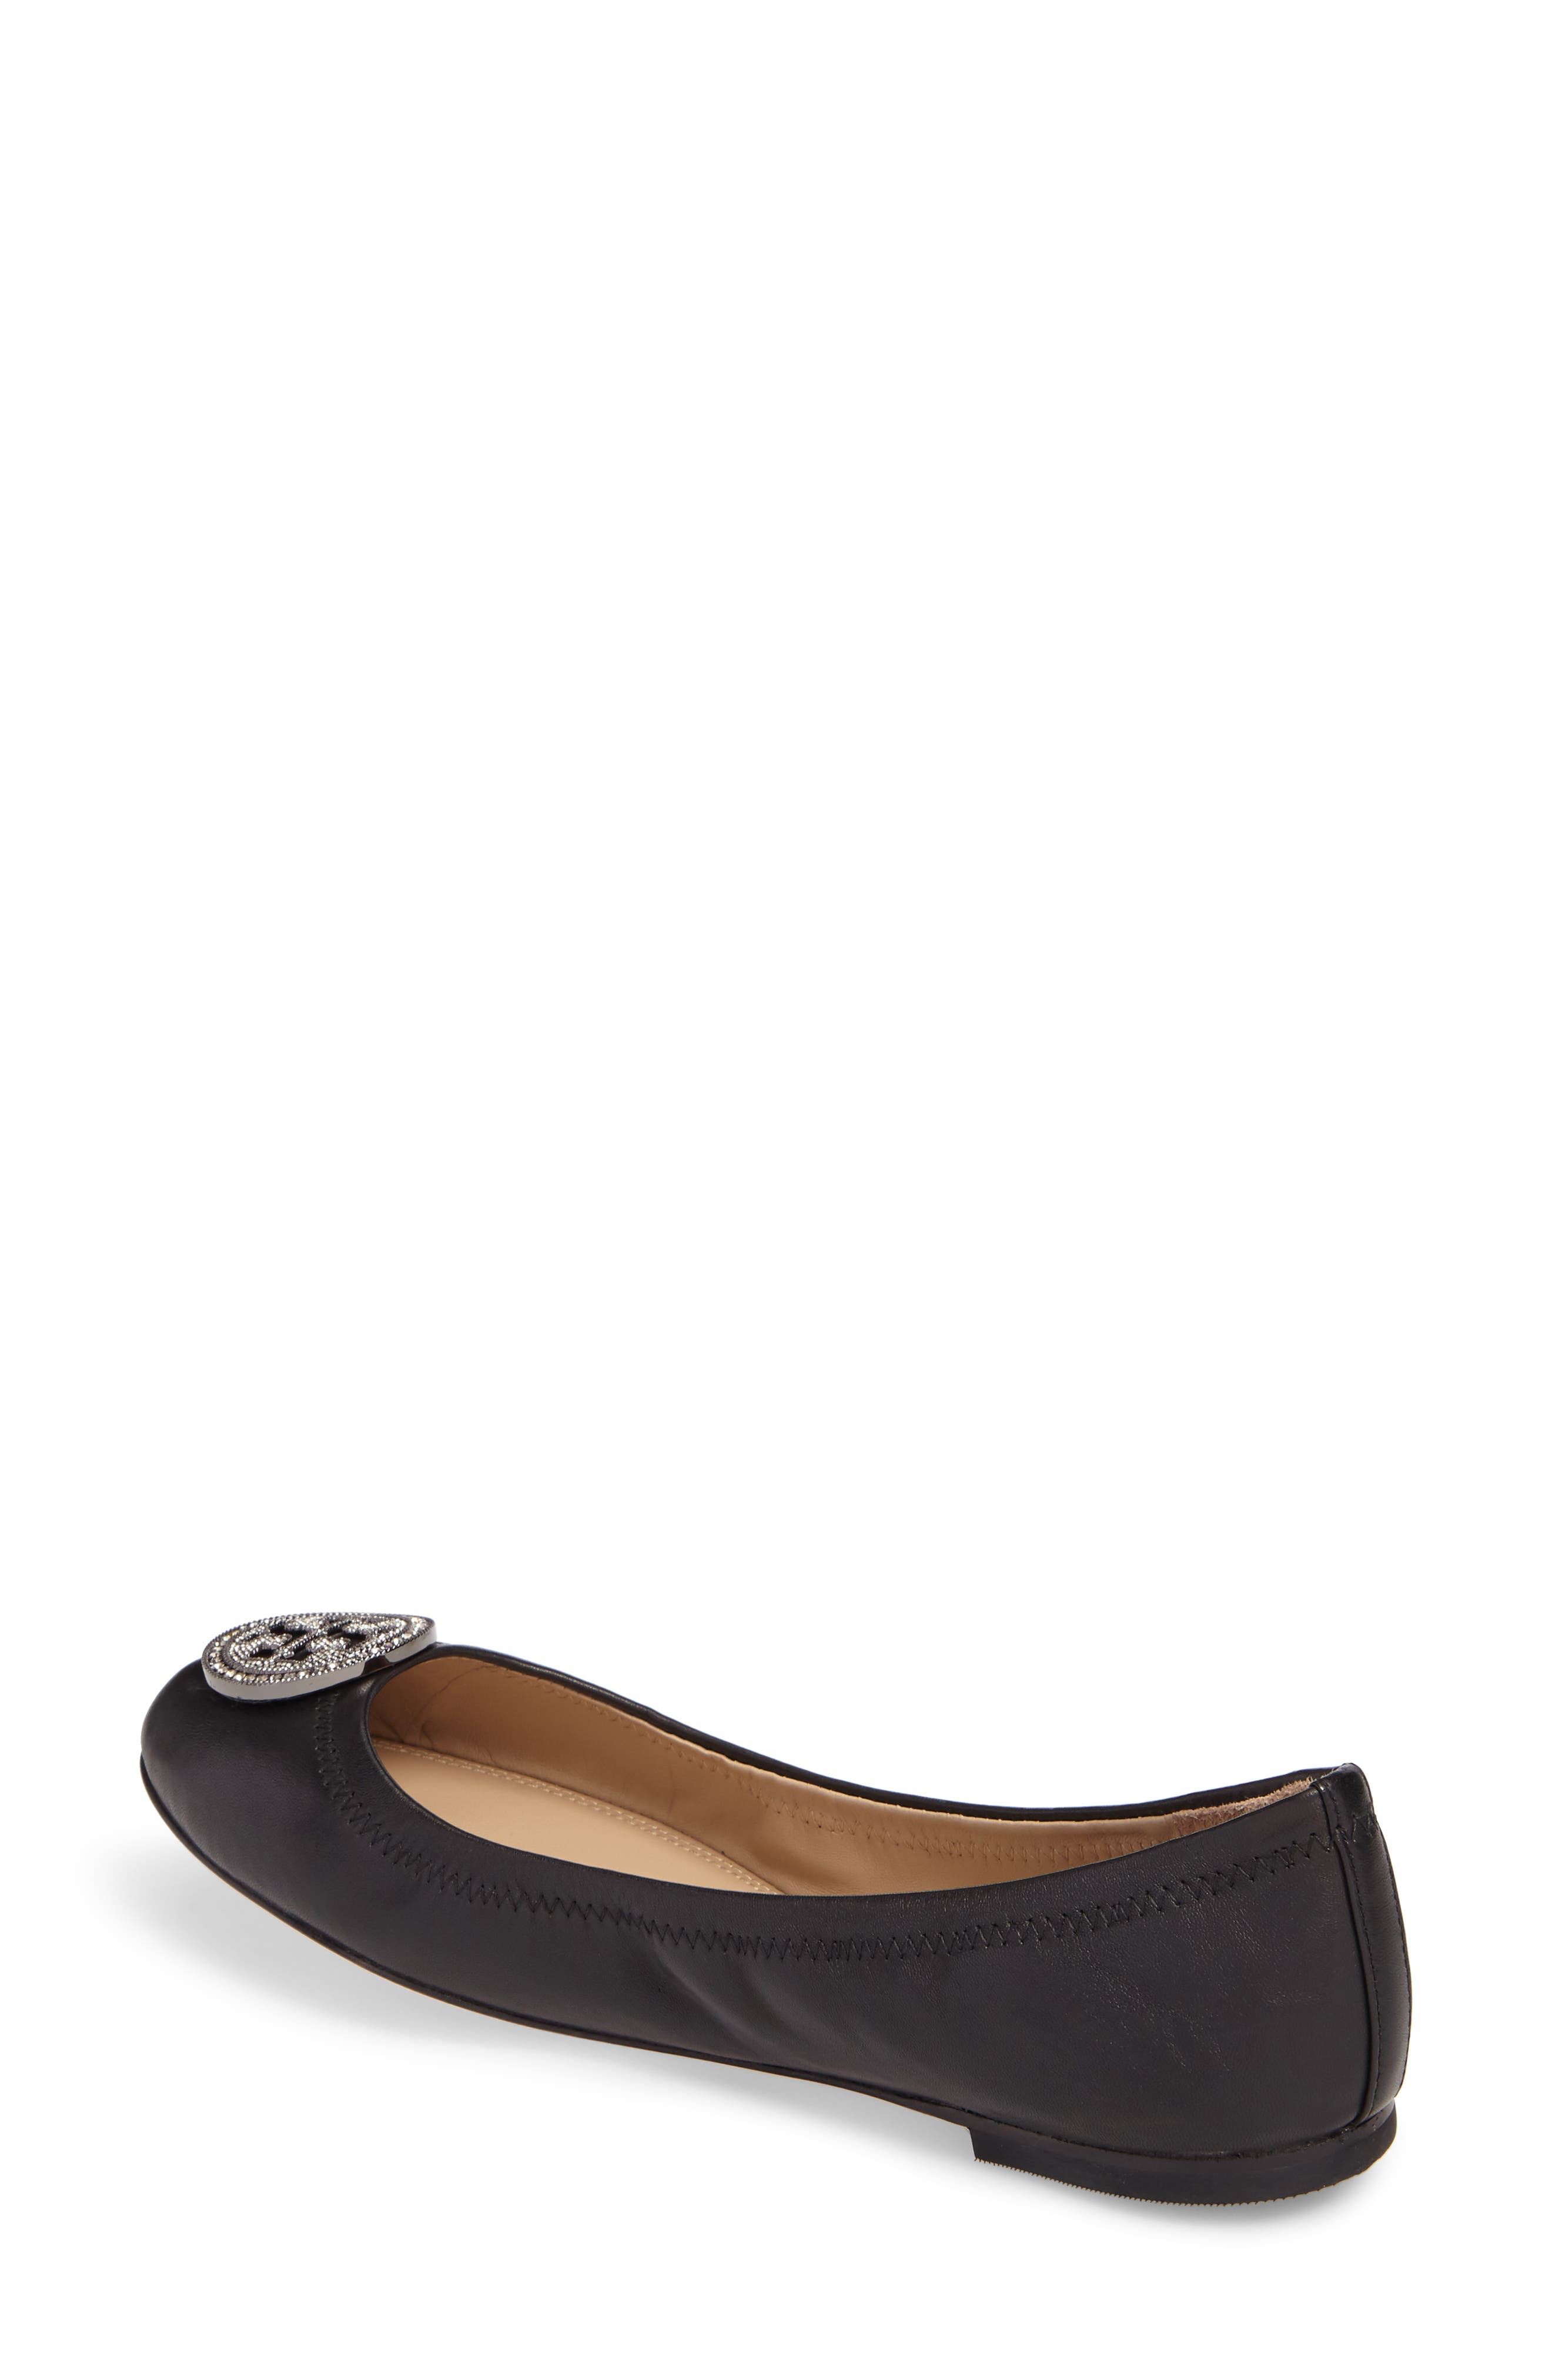 Alternate Image 2  - Tory Burch Liana Ballet Flat (Women)